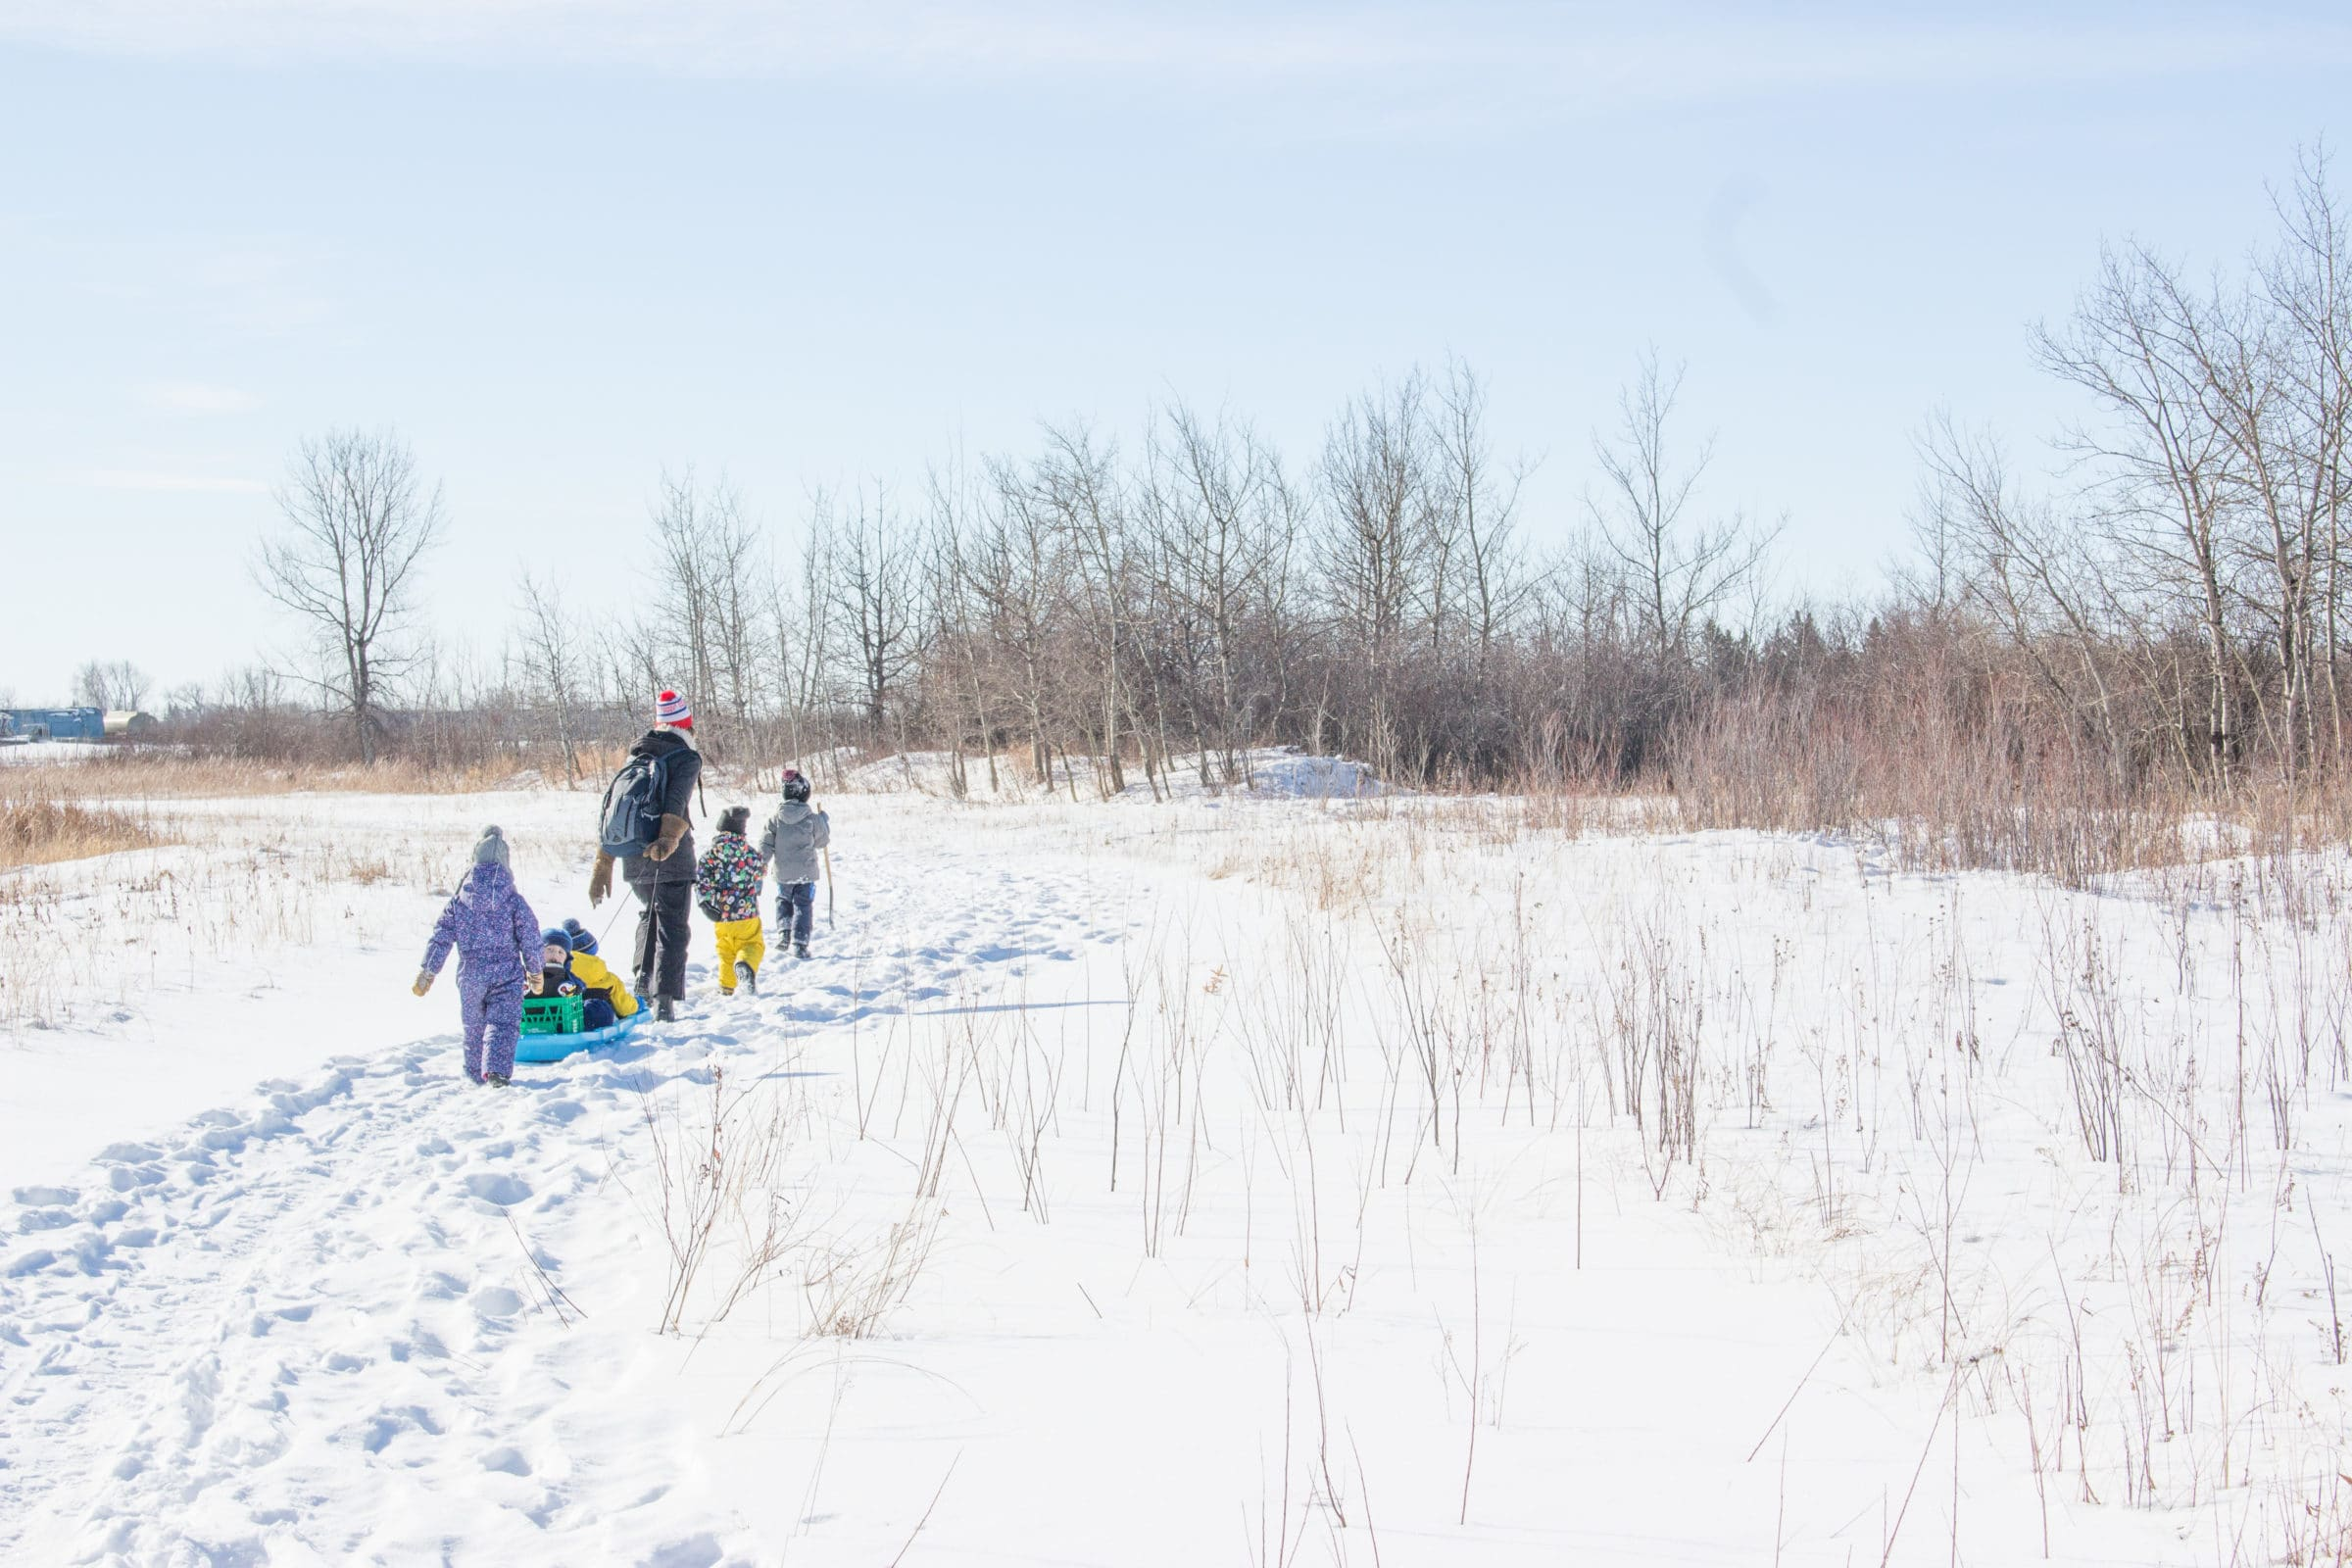 Adult pulling child in sled through snow, walking with other children.